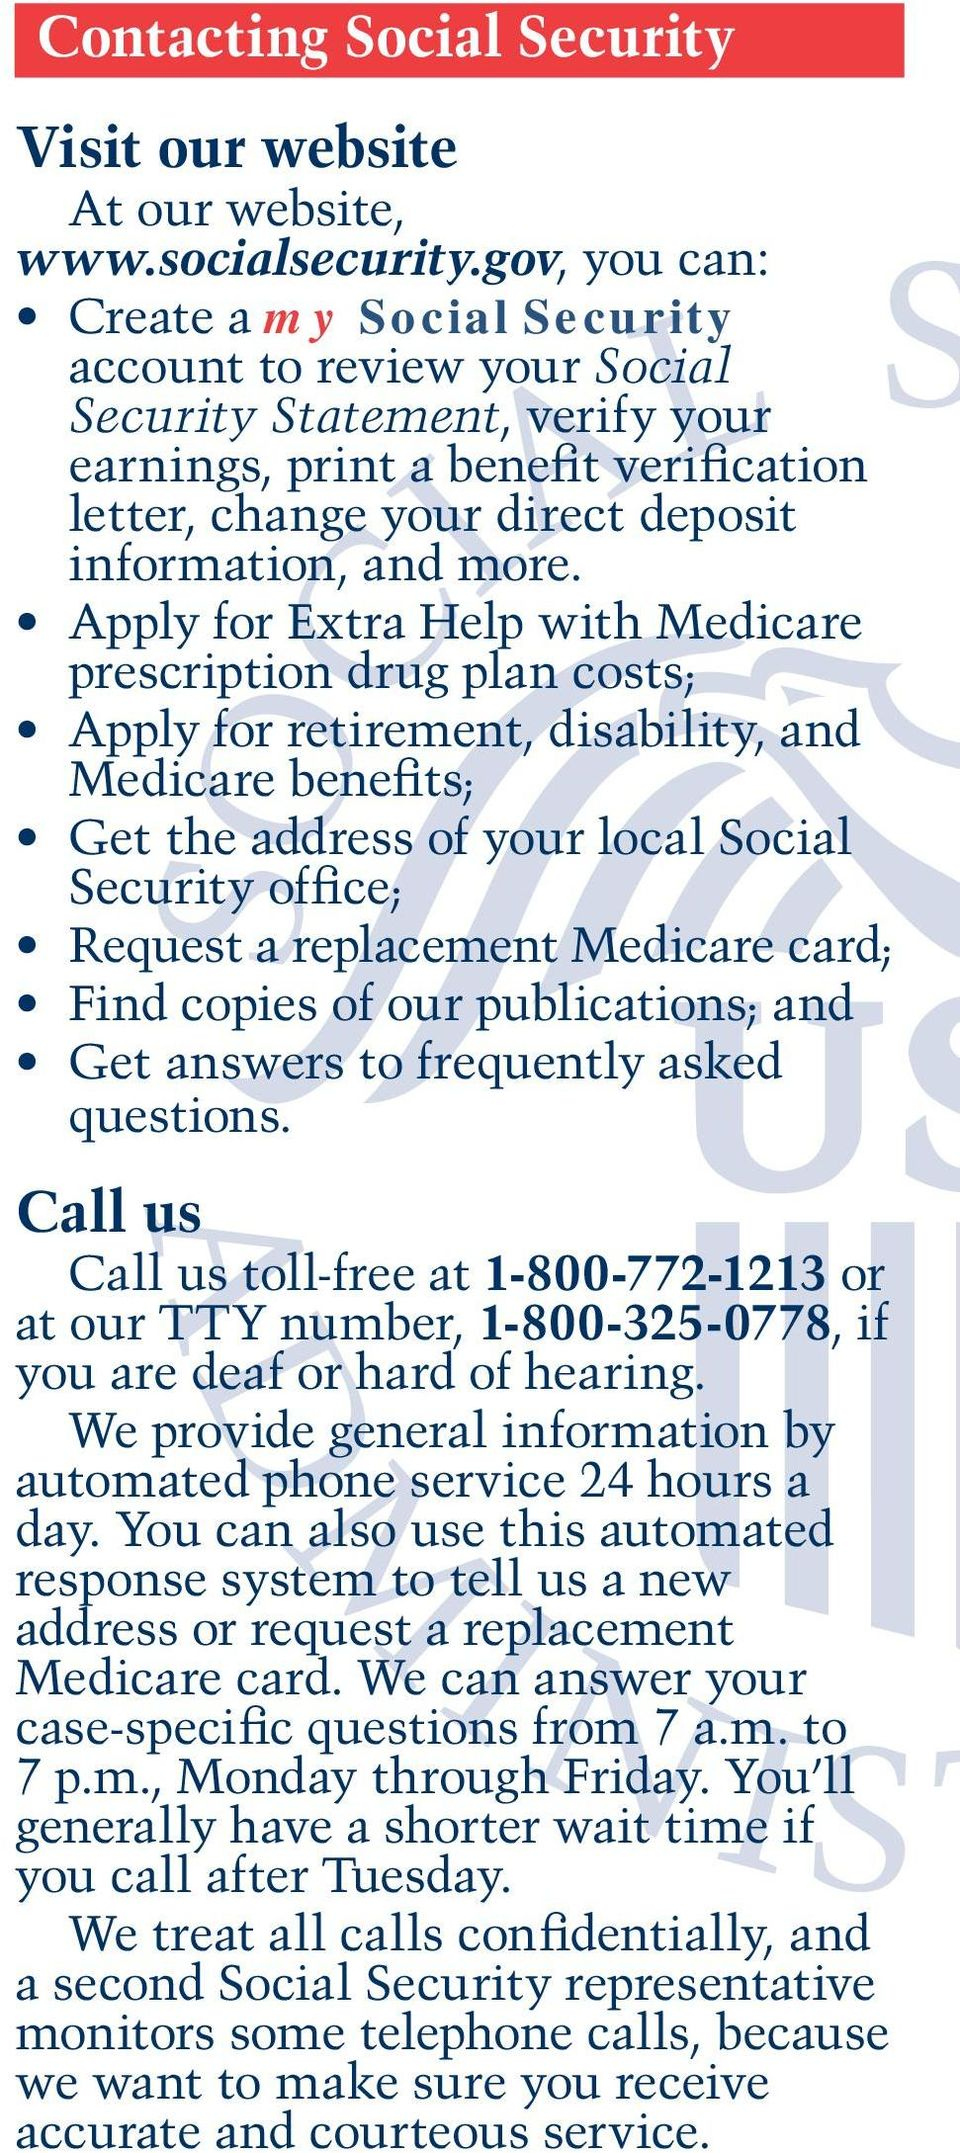 Apply for Extra Help with Medicare prescription drug plan costs; Apply for retirement, disability, and Medicare benefits; Get the address of your local Social Security office; Request a replacement